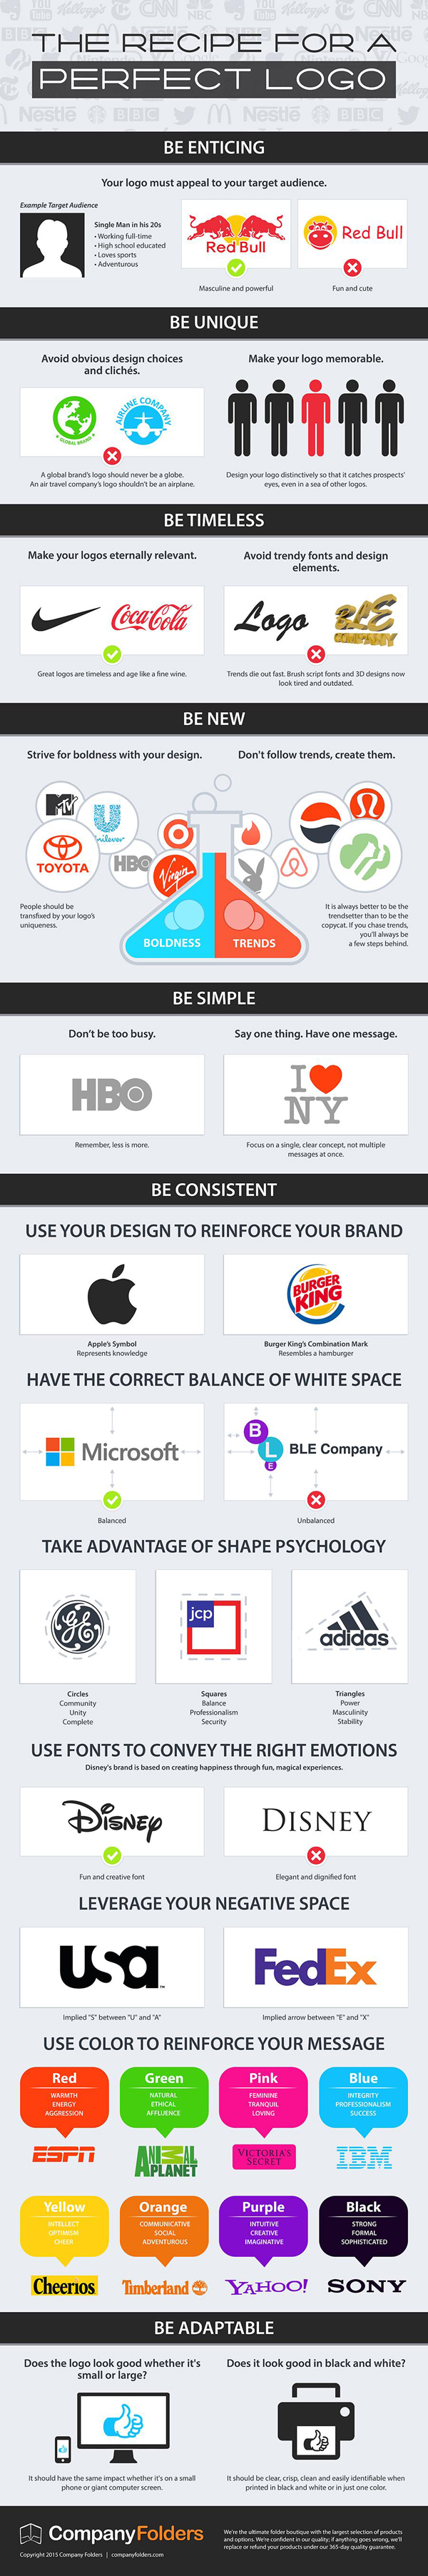 Perfect Logo Design Tips